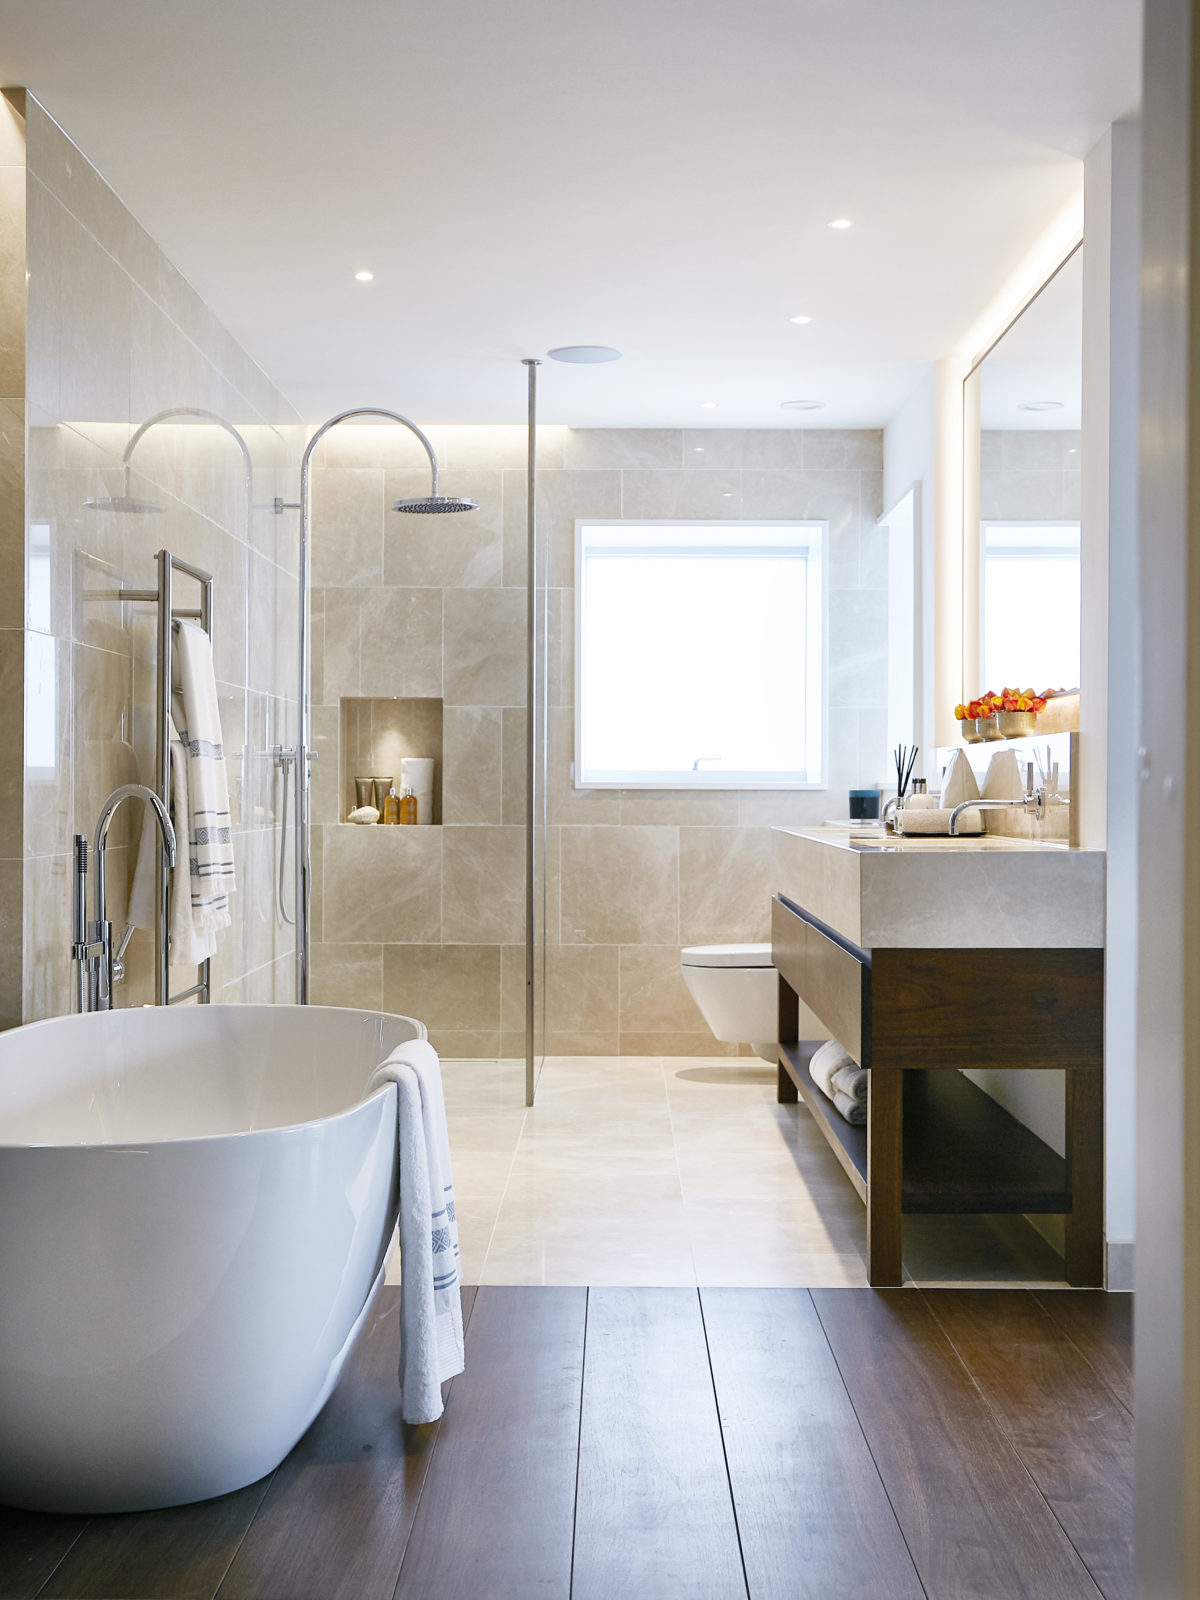 crema classic bathroom with walnut vanity unit and bathtub floor detail